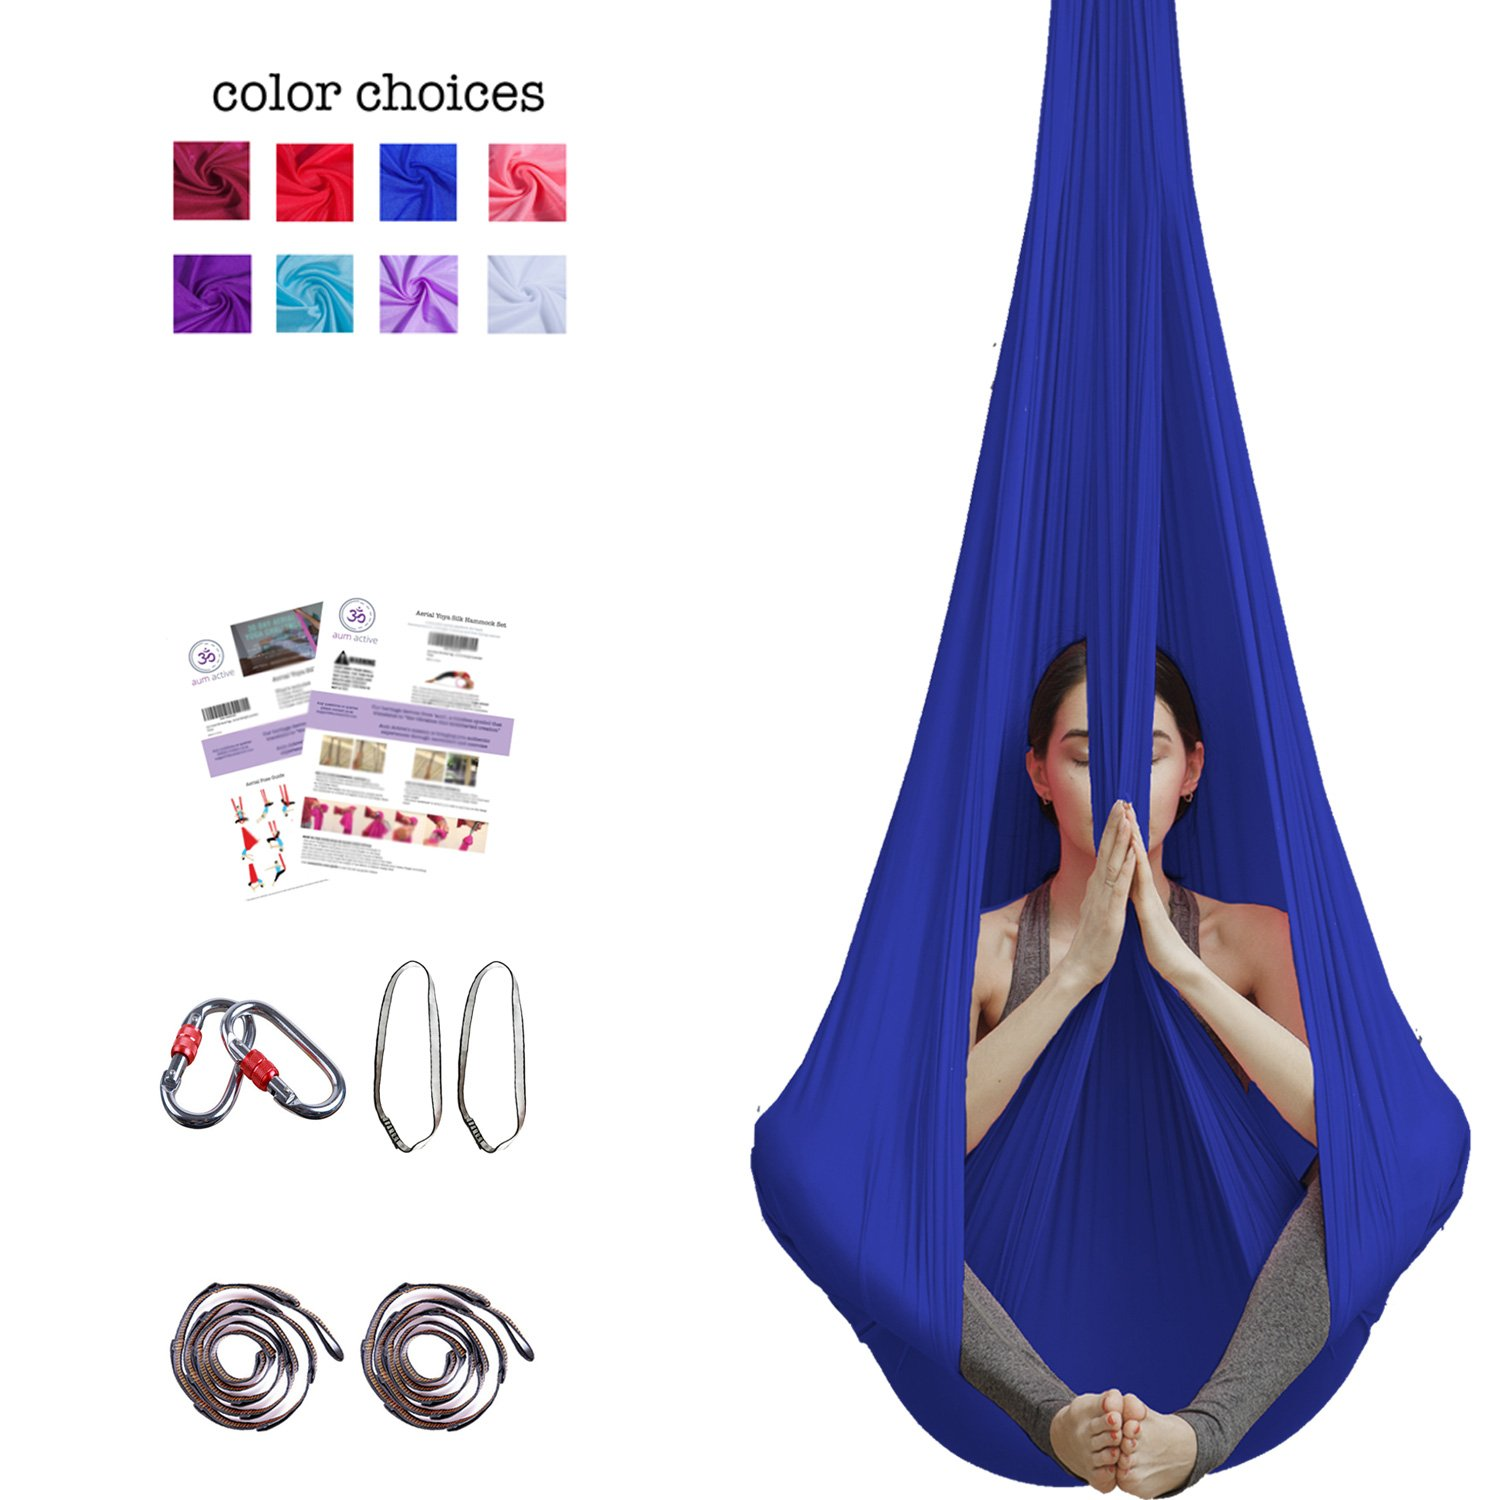 Aum Active Aerial Yoga Hammock - Include Aerial Silk Fabric, Carabiners, Extension Straps, 30-Day Pose Guide - Premium Yoga Swing for Antigravity Exercises, Inversion & Sensory Therapy (Navy)